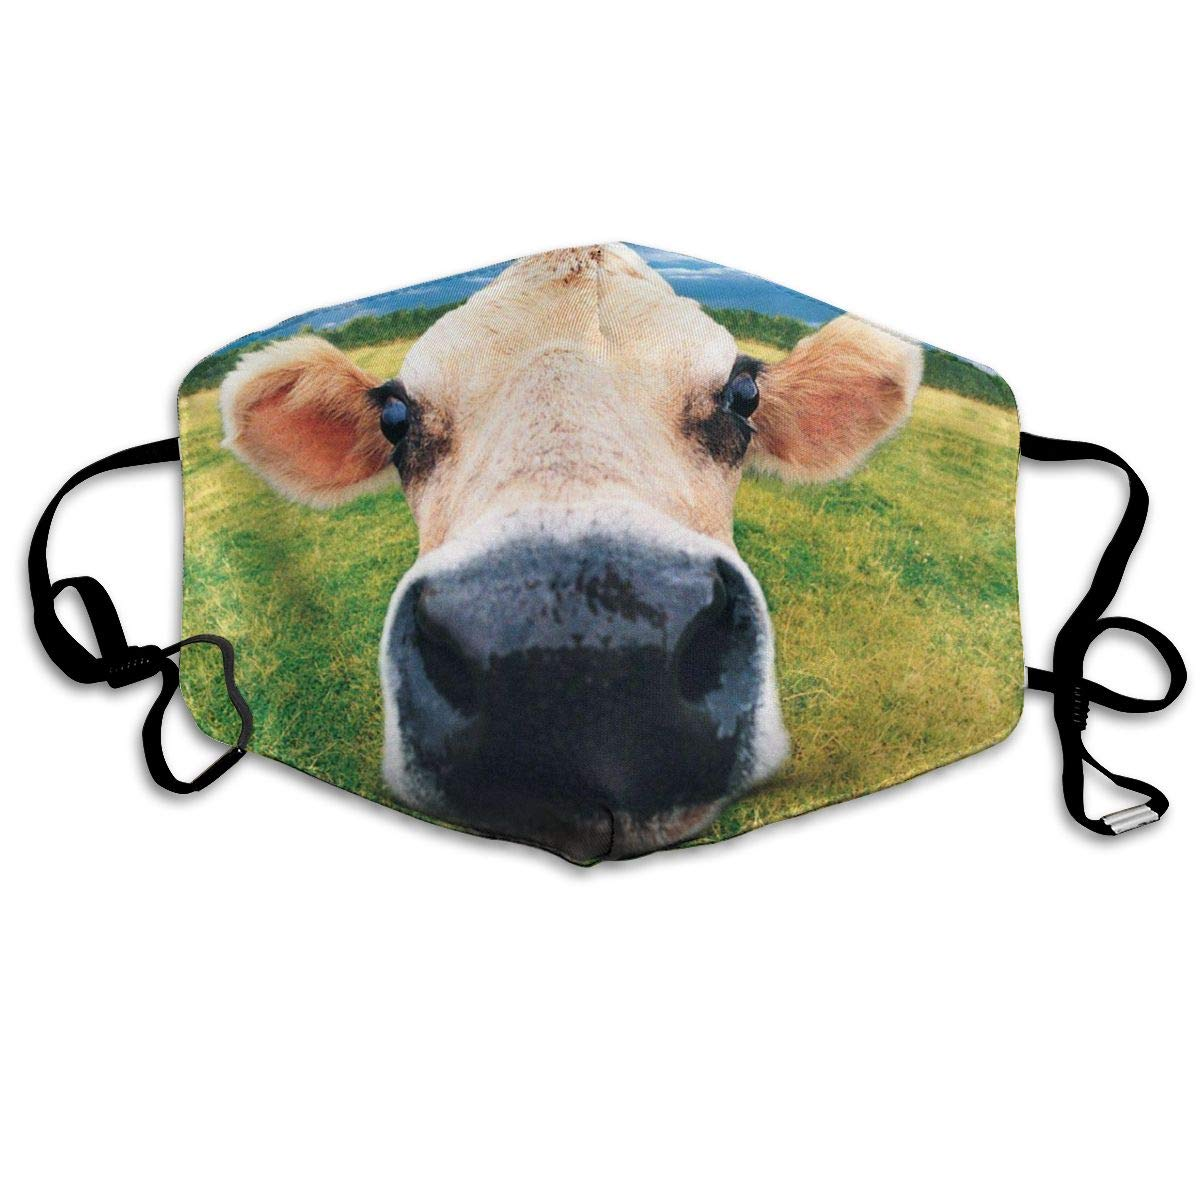 Muindancer Dust Mask, Cow Paint Face Mask With Adjustable Earloops Breathable Reusable Outdoor Mouth Cover For Adults Kids